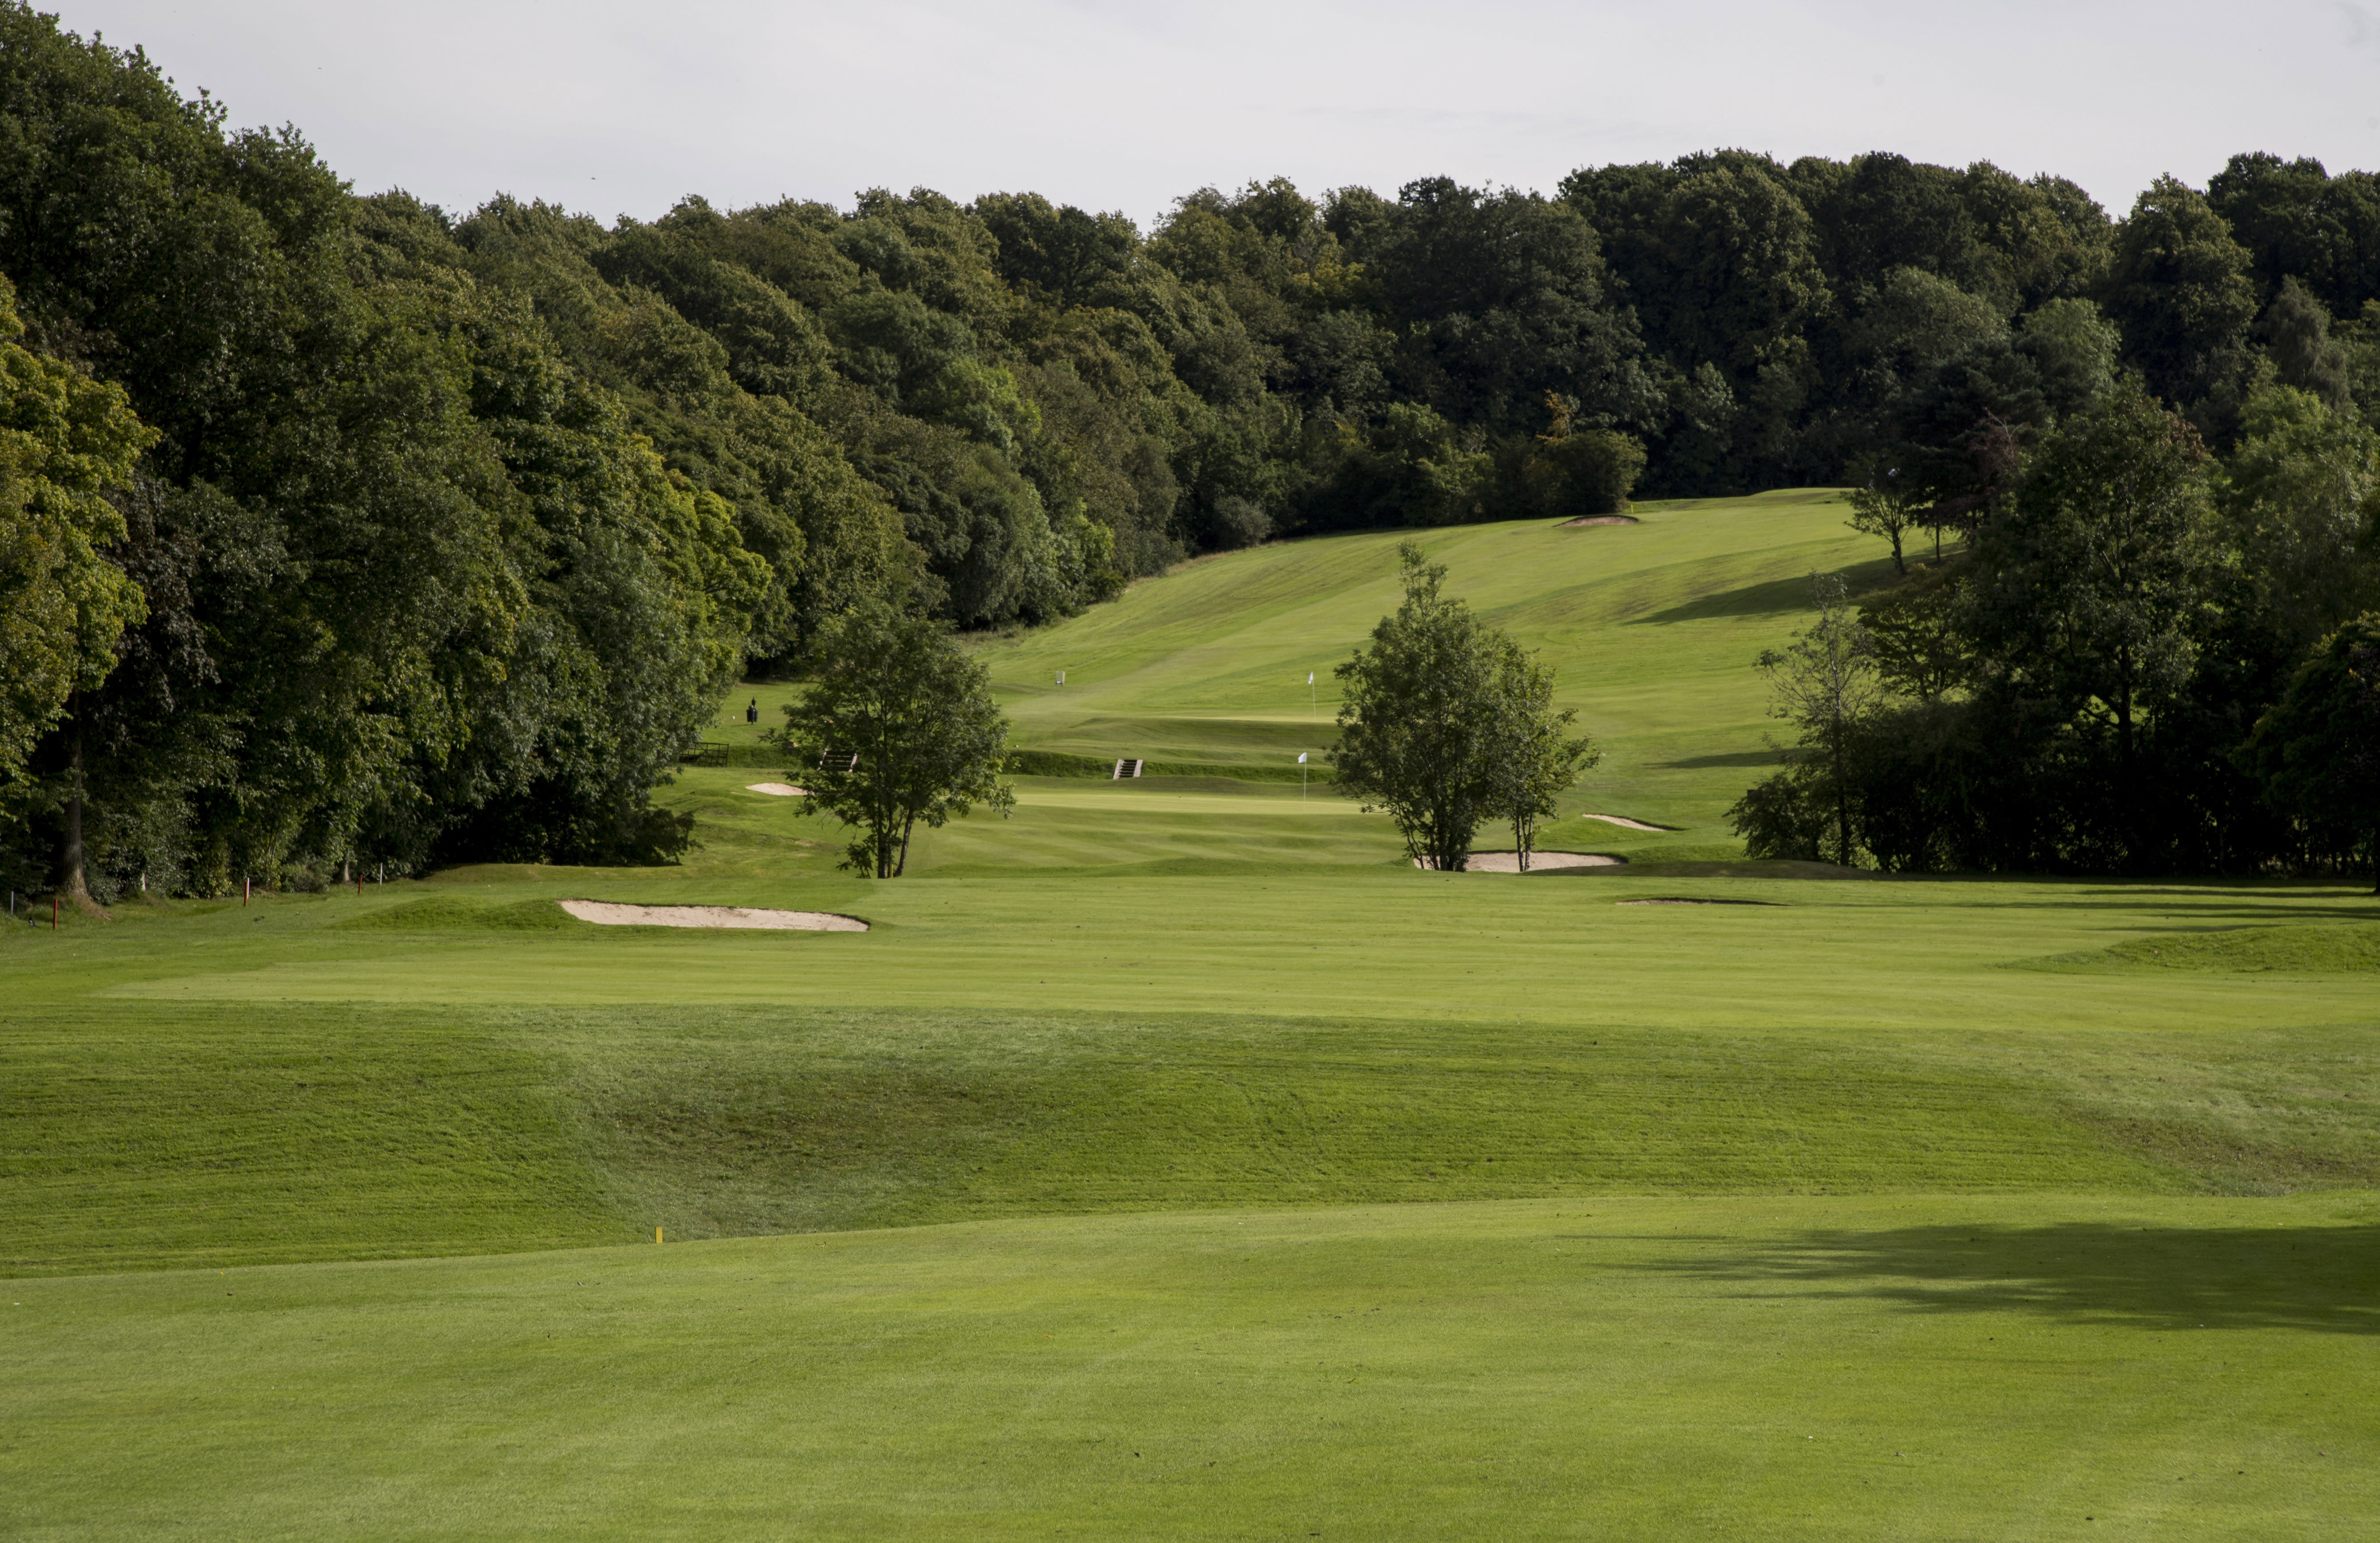 View from the golf course towards the countryside at David Lloyd Glasgow Rouken Glen